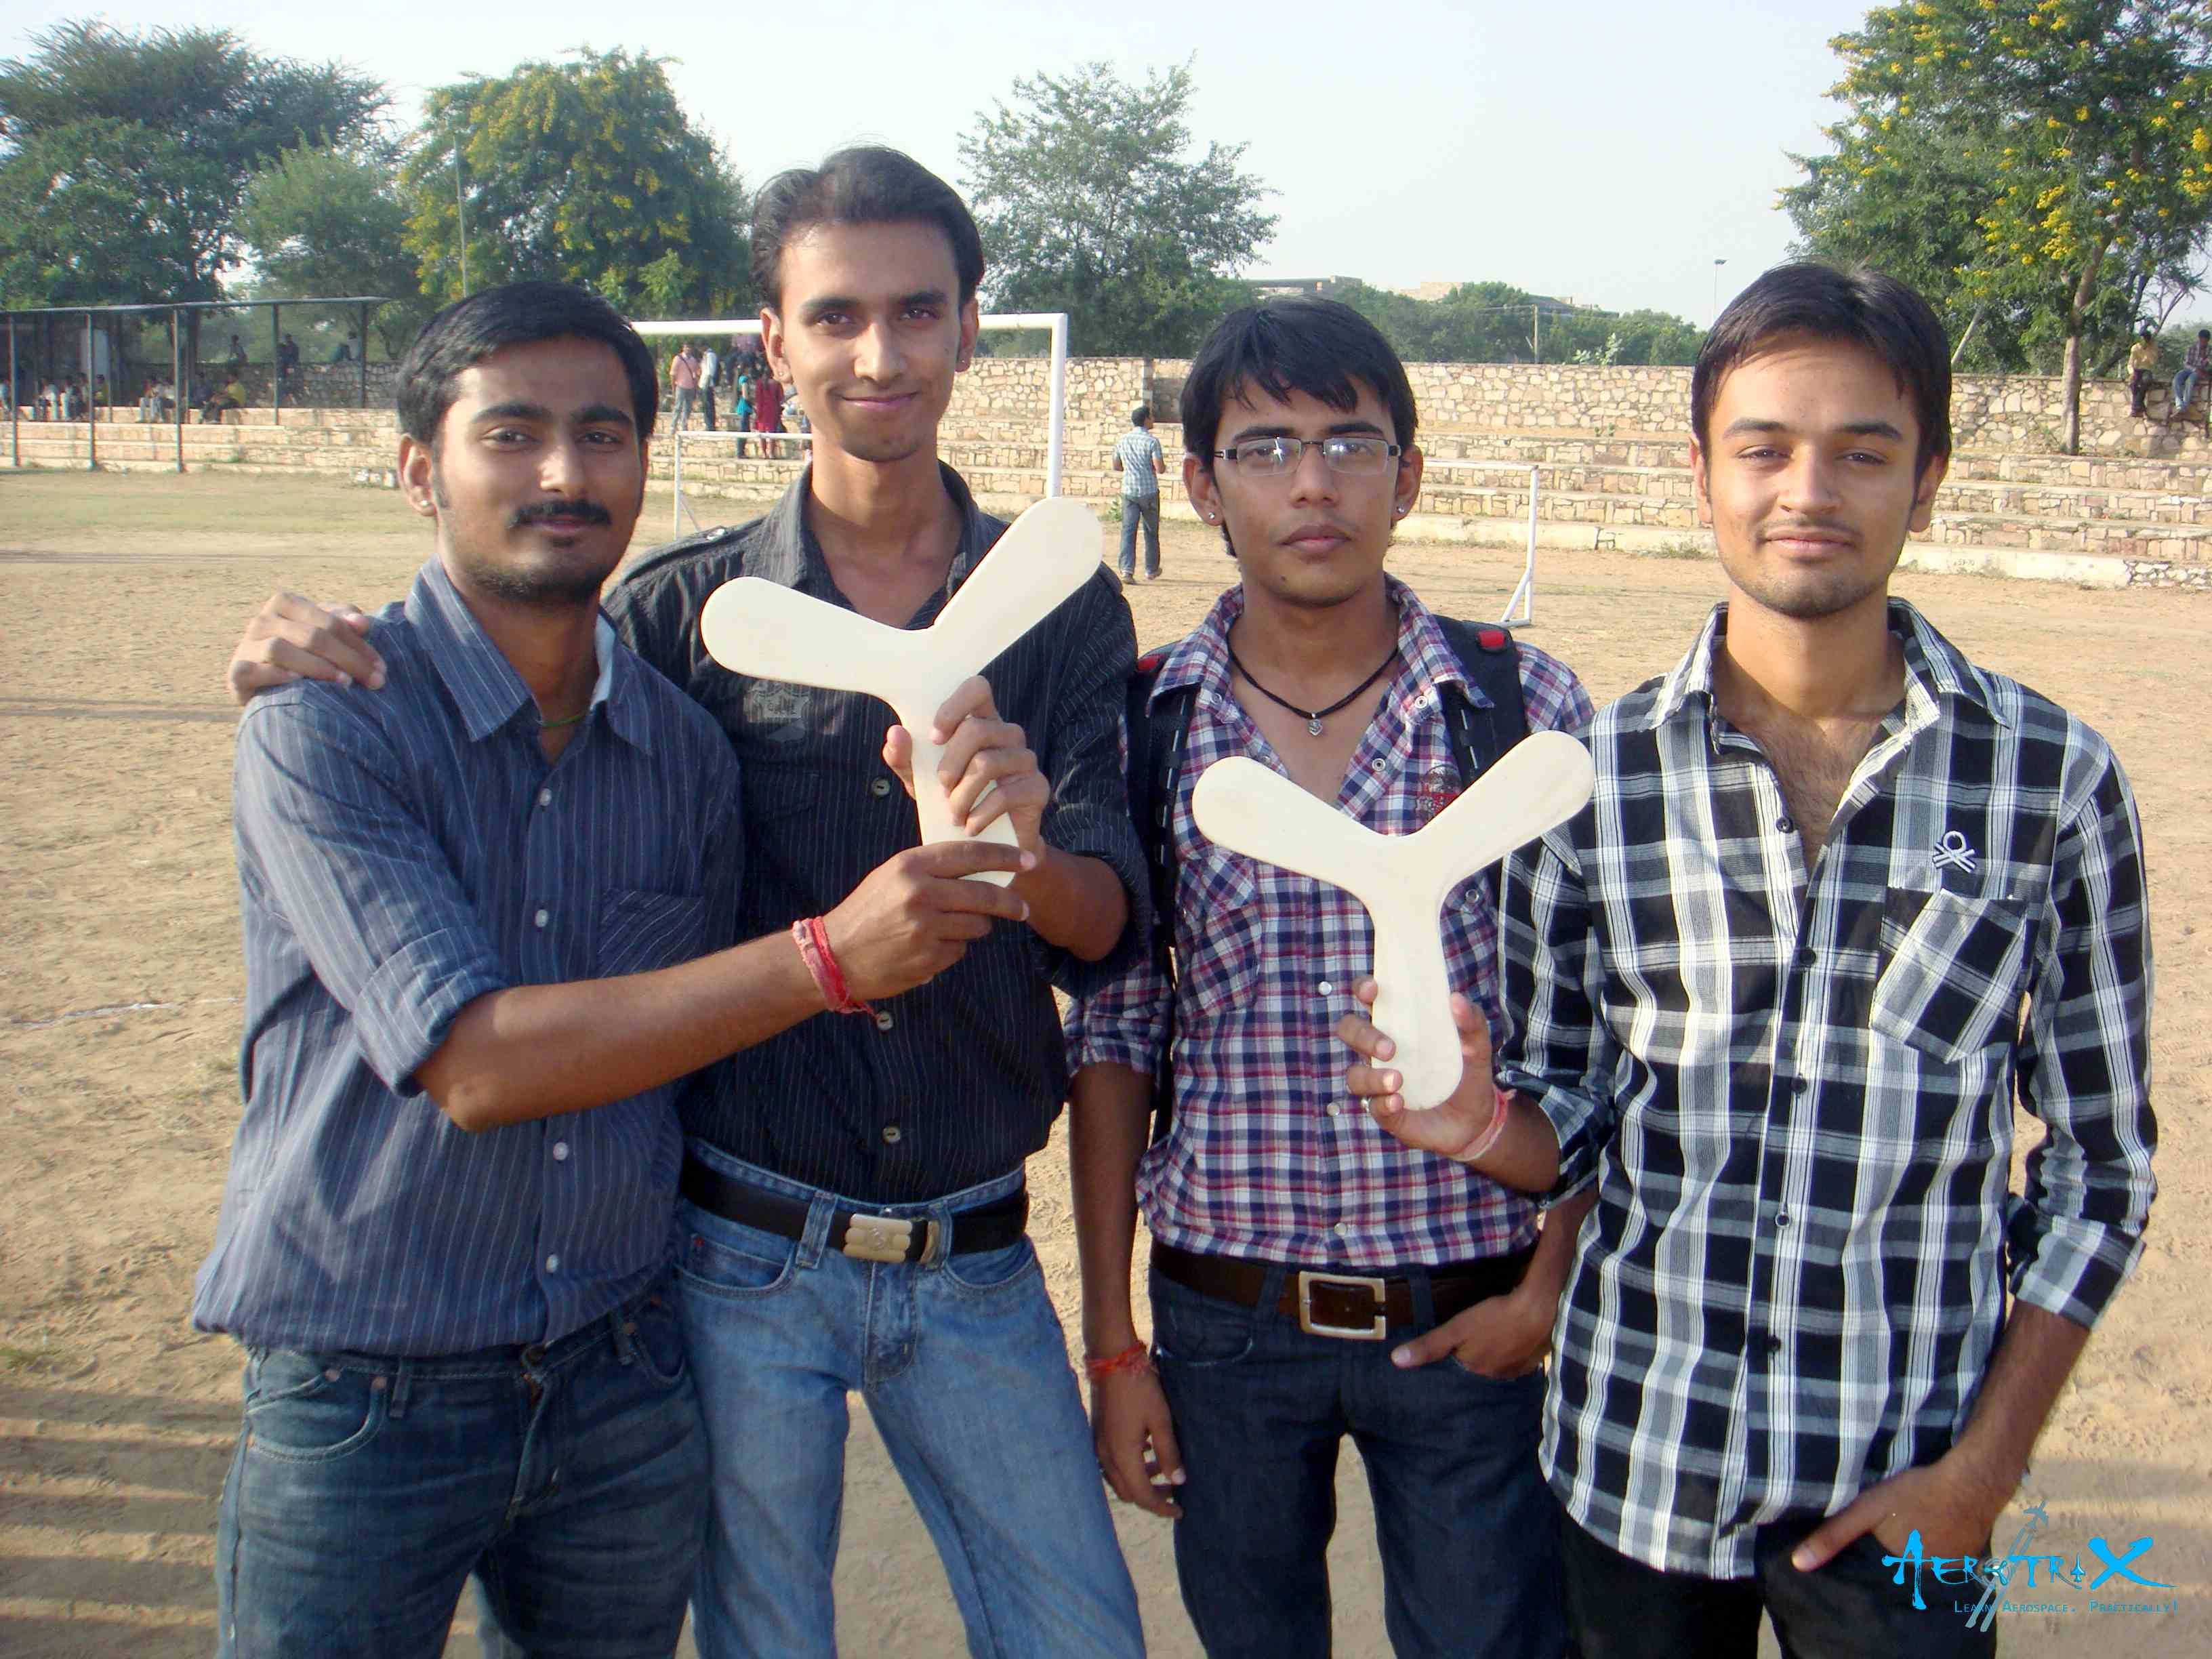 Students with their Boomerang